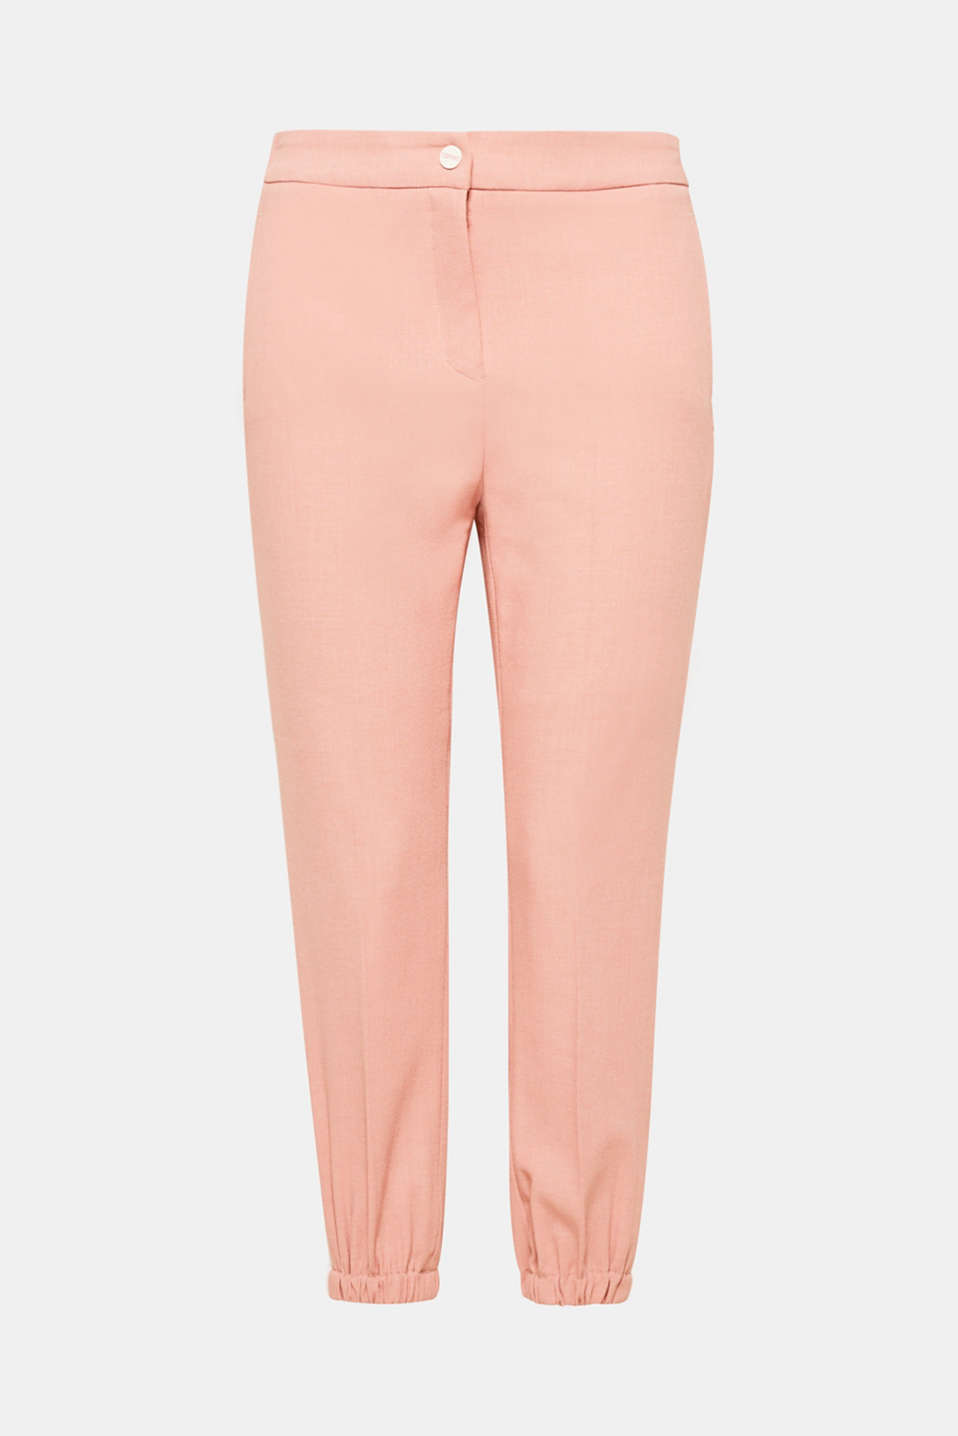 The side stripes and comfortable elasticated waistband and leg cuffs give these stretchy crêpe trousers their fashionable look.